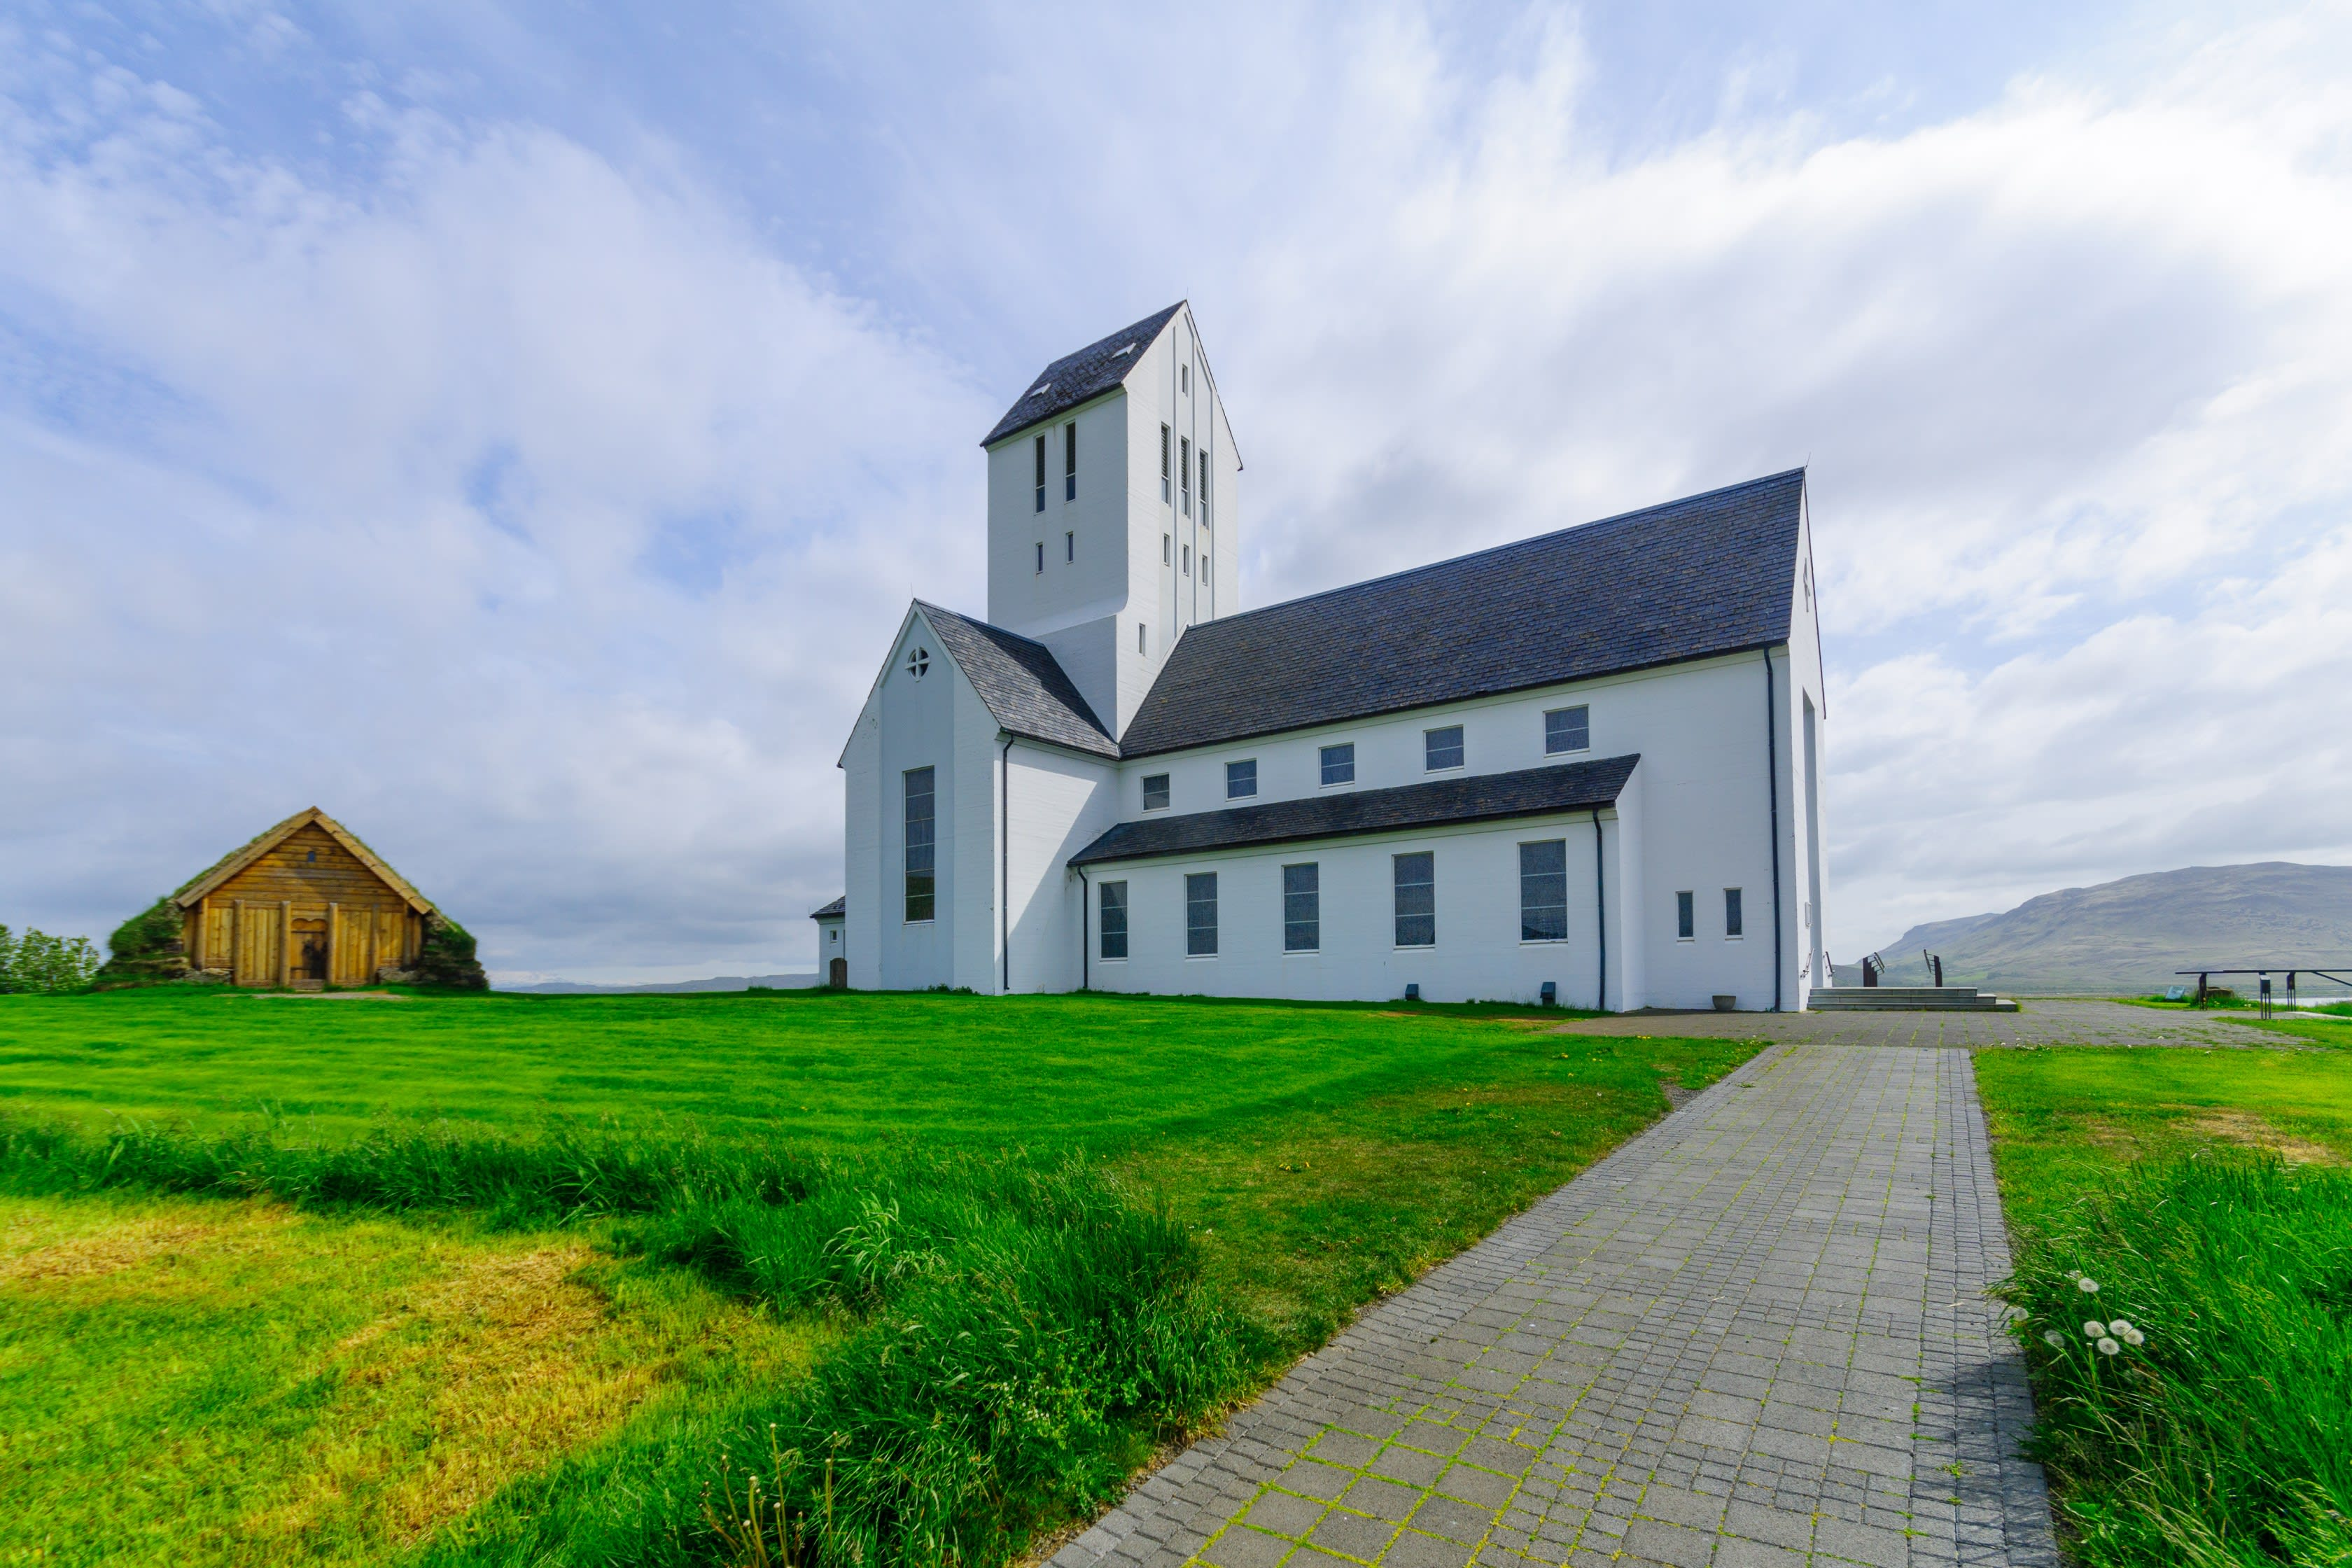 The cathedral at Skalholt viewed on a bright summers day with verdant greenery in the foreground